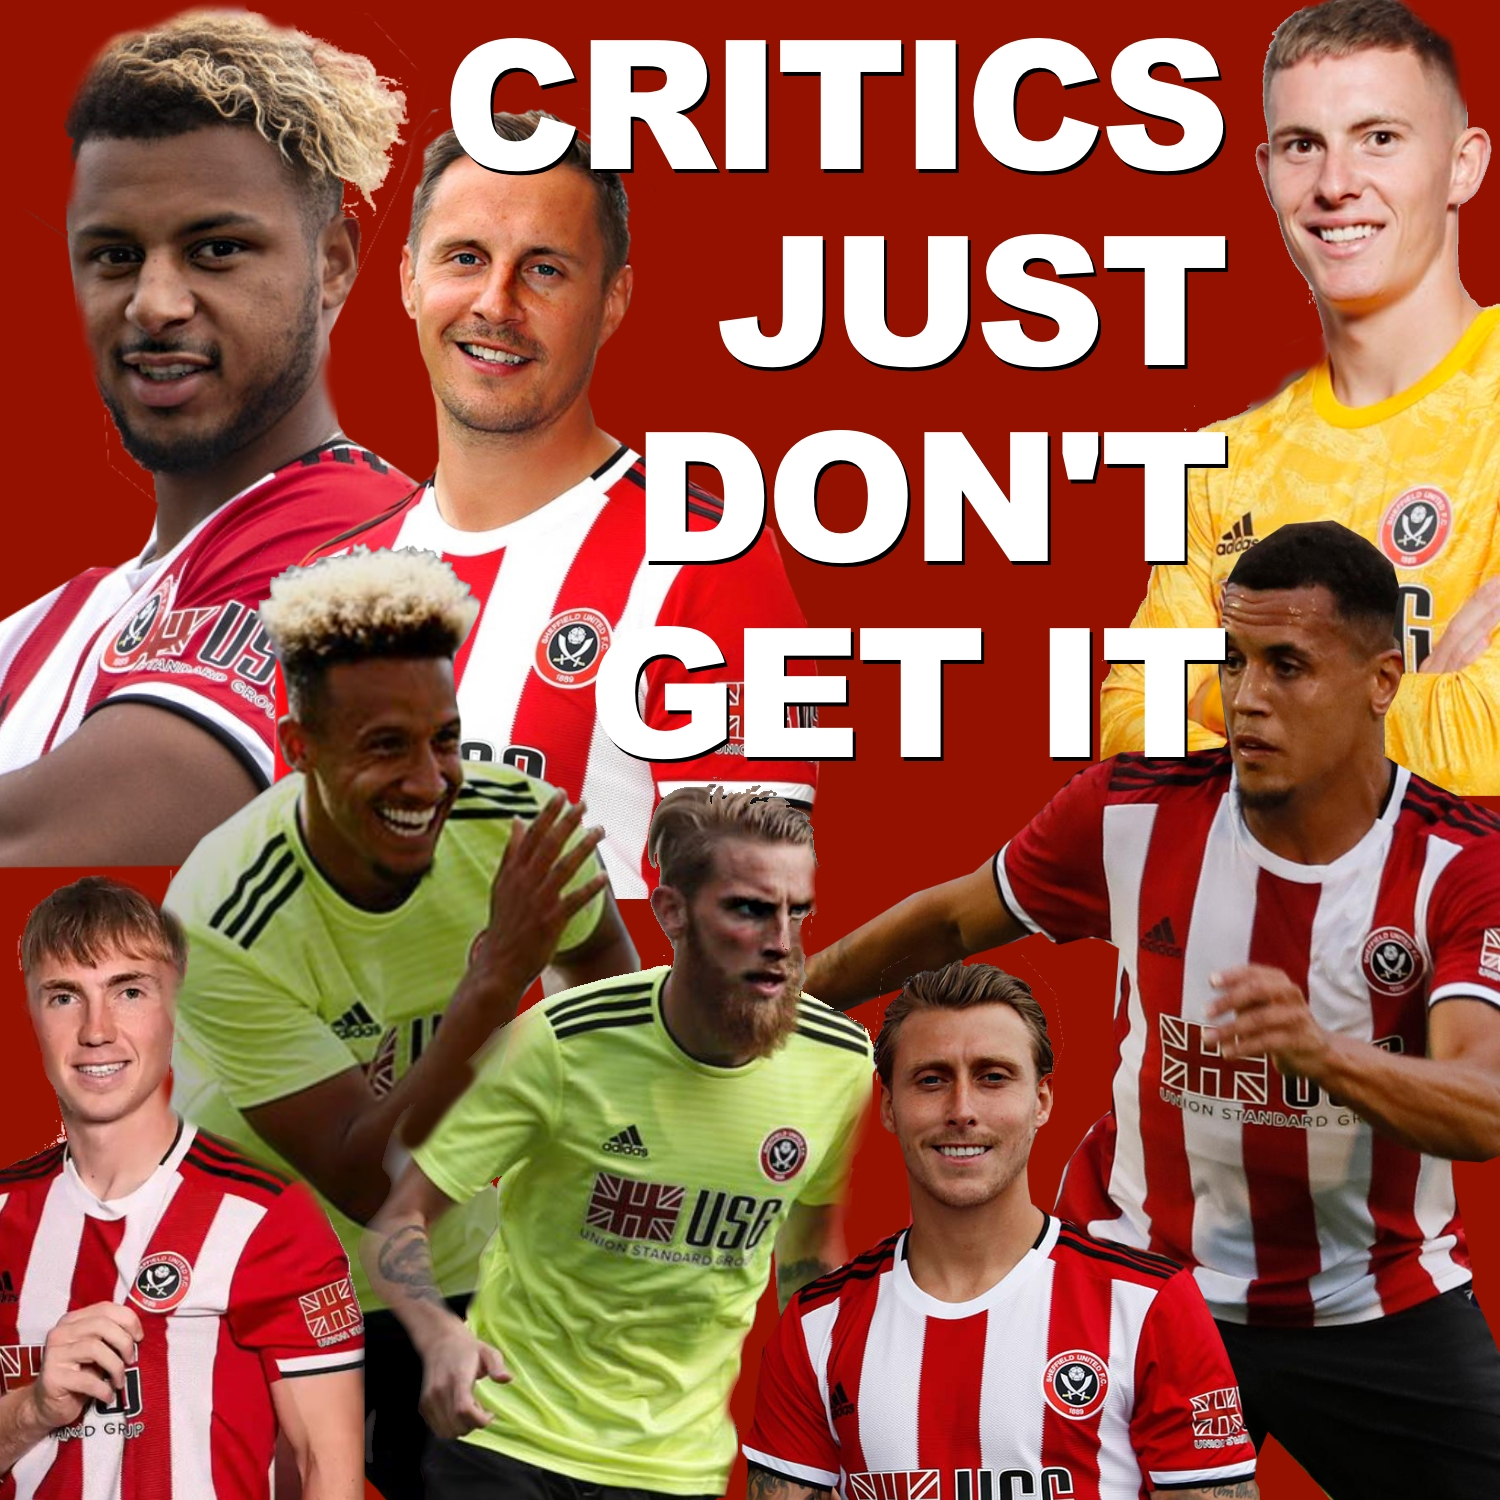 Sheffield United's critics on eve of Premier League kick-off just don't understand how Chris Wilder operates